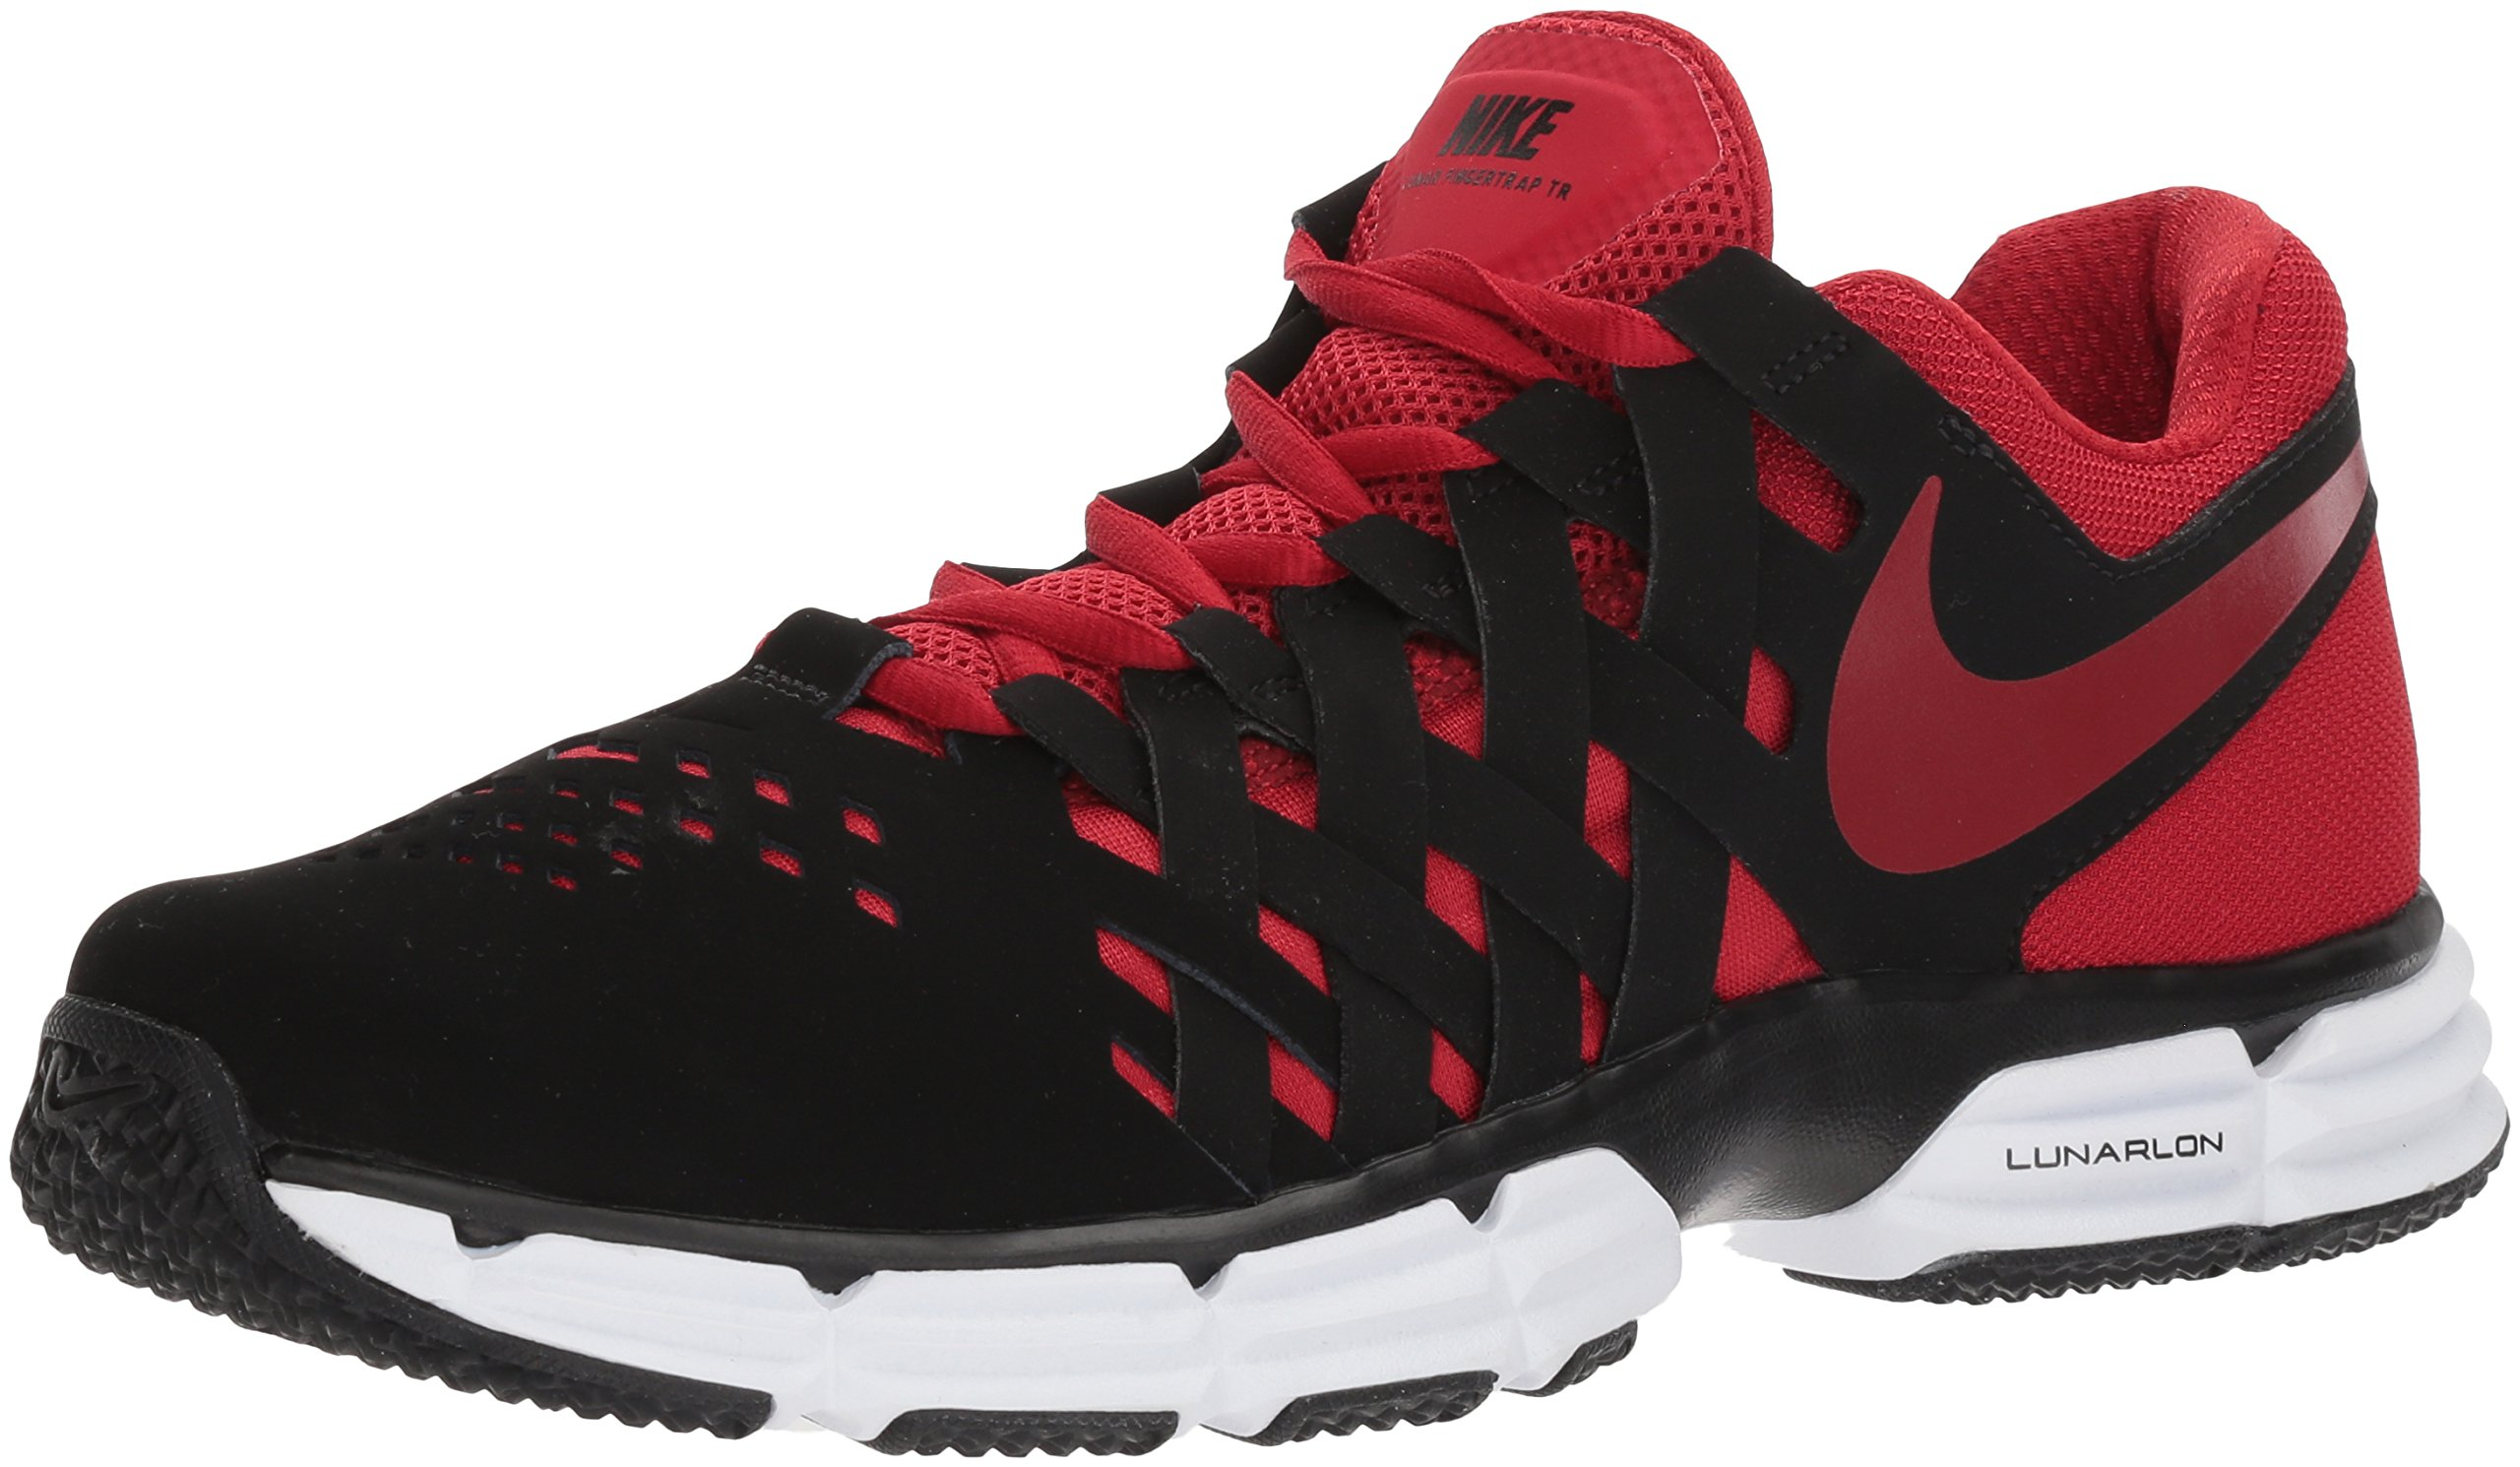 Nike Men's Lunar Fingertrap Cross Trainer, Black/Gym red, 8.5 Regular US